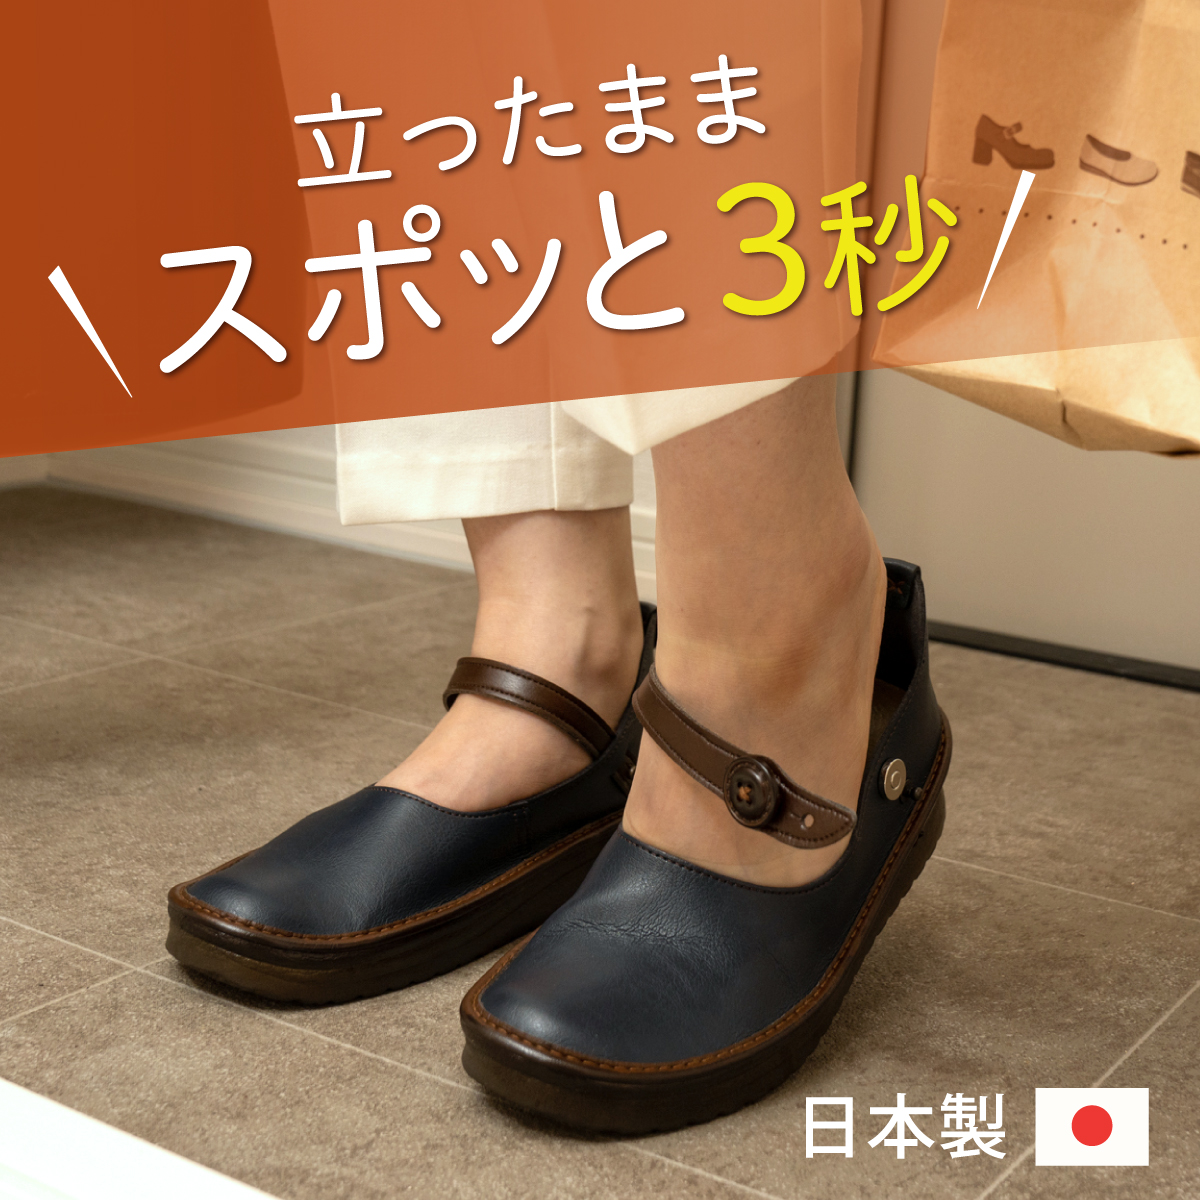 6f6361f05dac The shoemaker bunch which kayak KAYAK bell made in comfort shoes casual  strap Lady s magnet magnet hands-free going to hospital opera pump Japan is  kind to